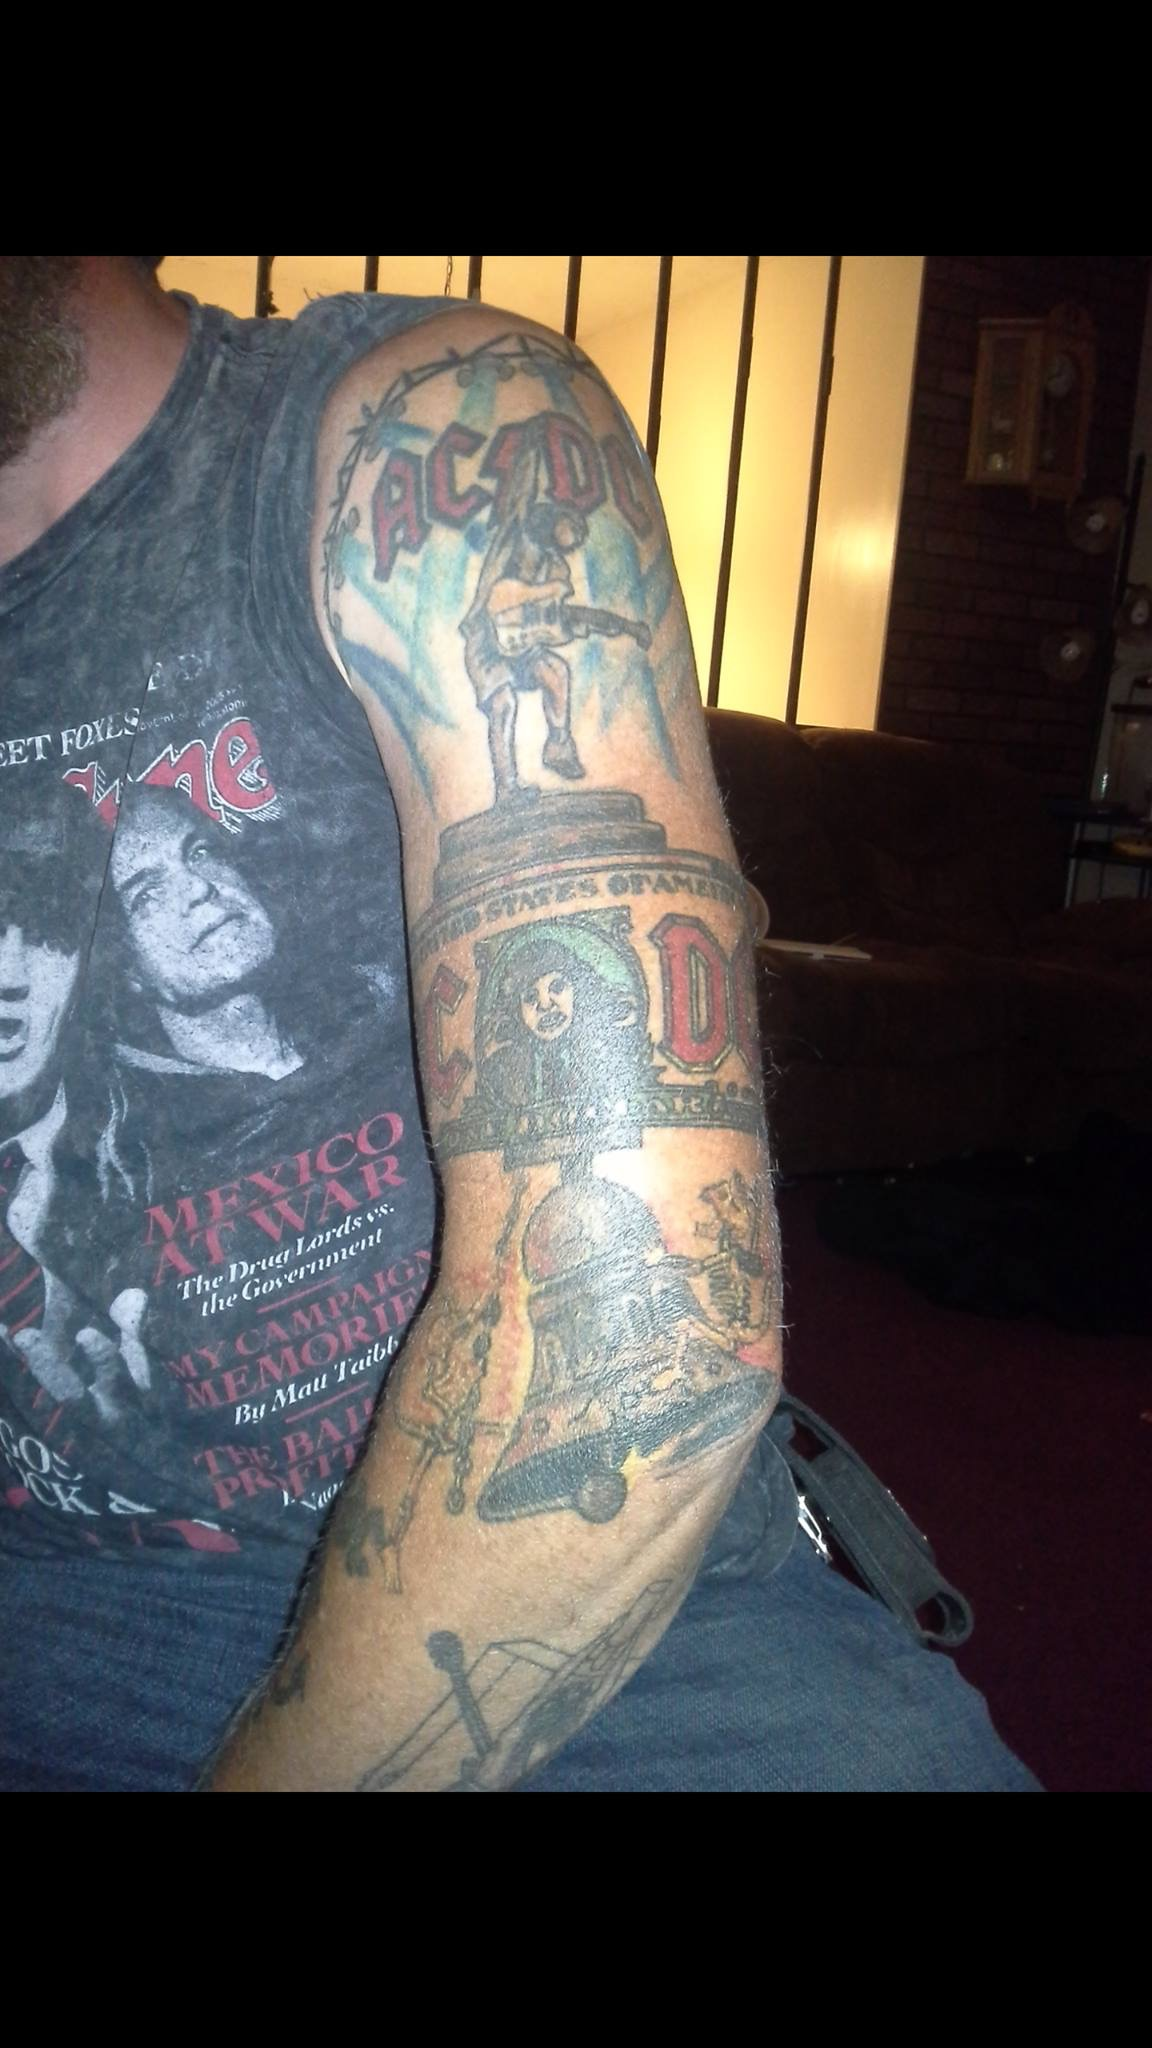 Ac Dc Mega Fan Shows His 'High Voltage' Fandom With His Ideas And Designs